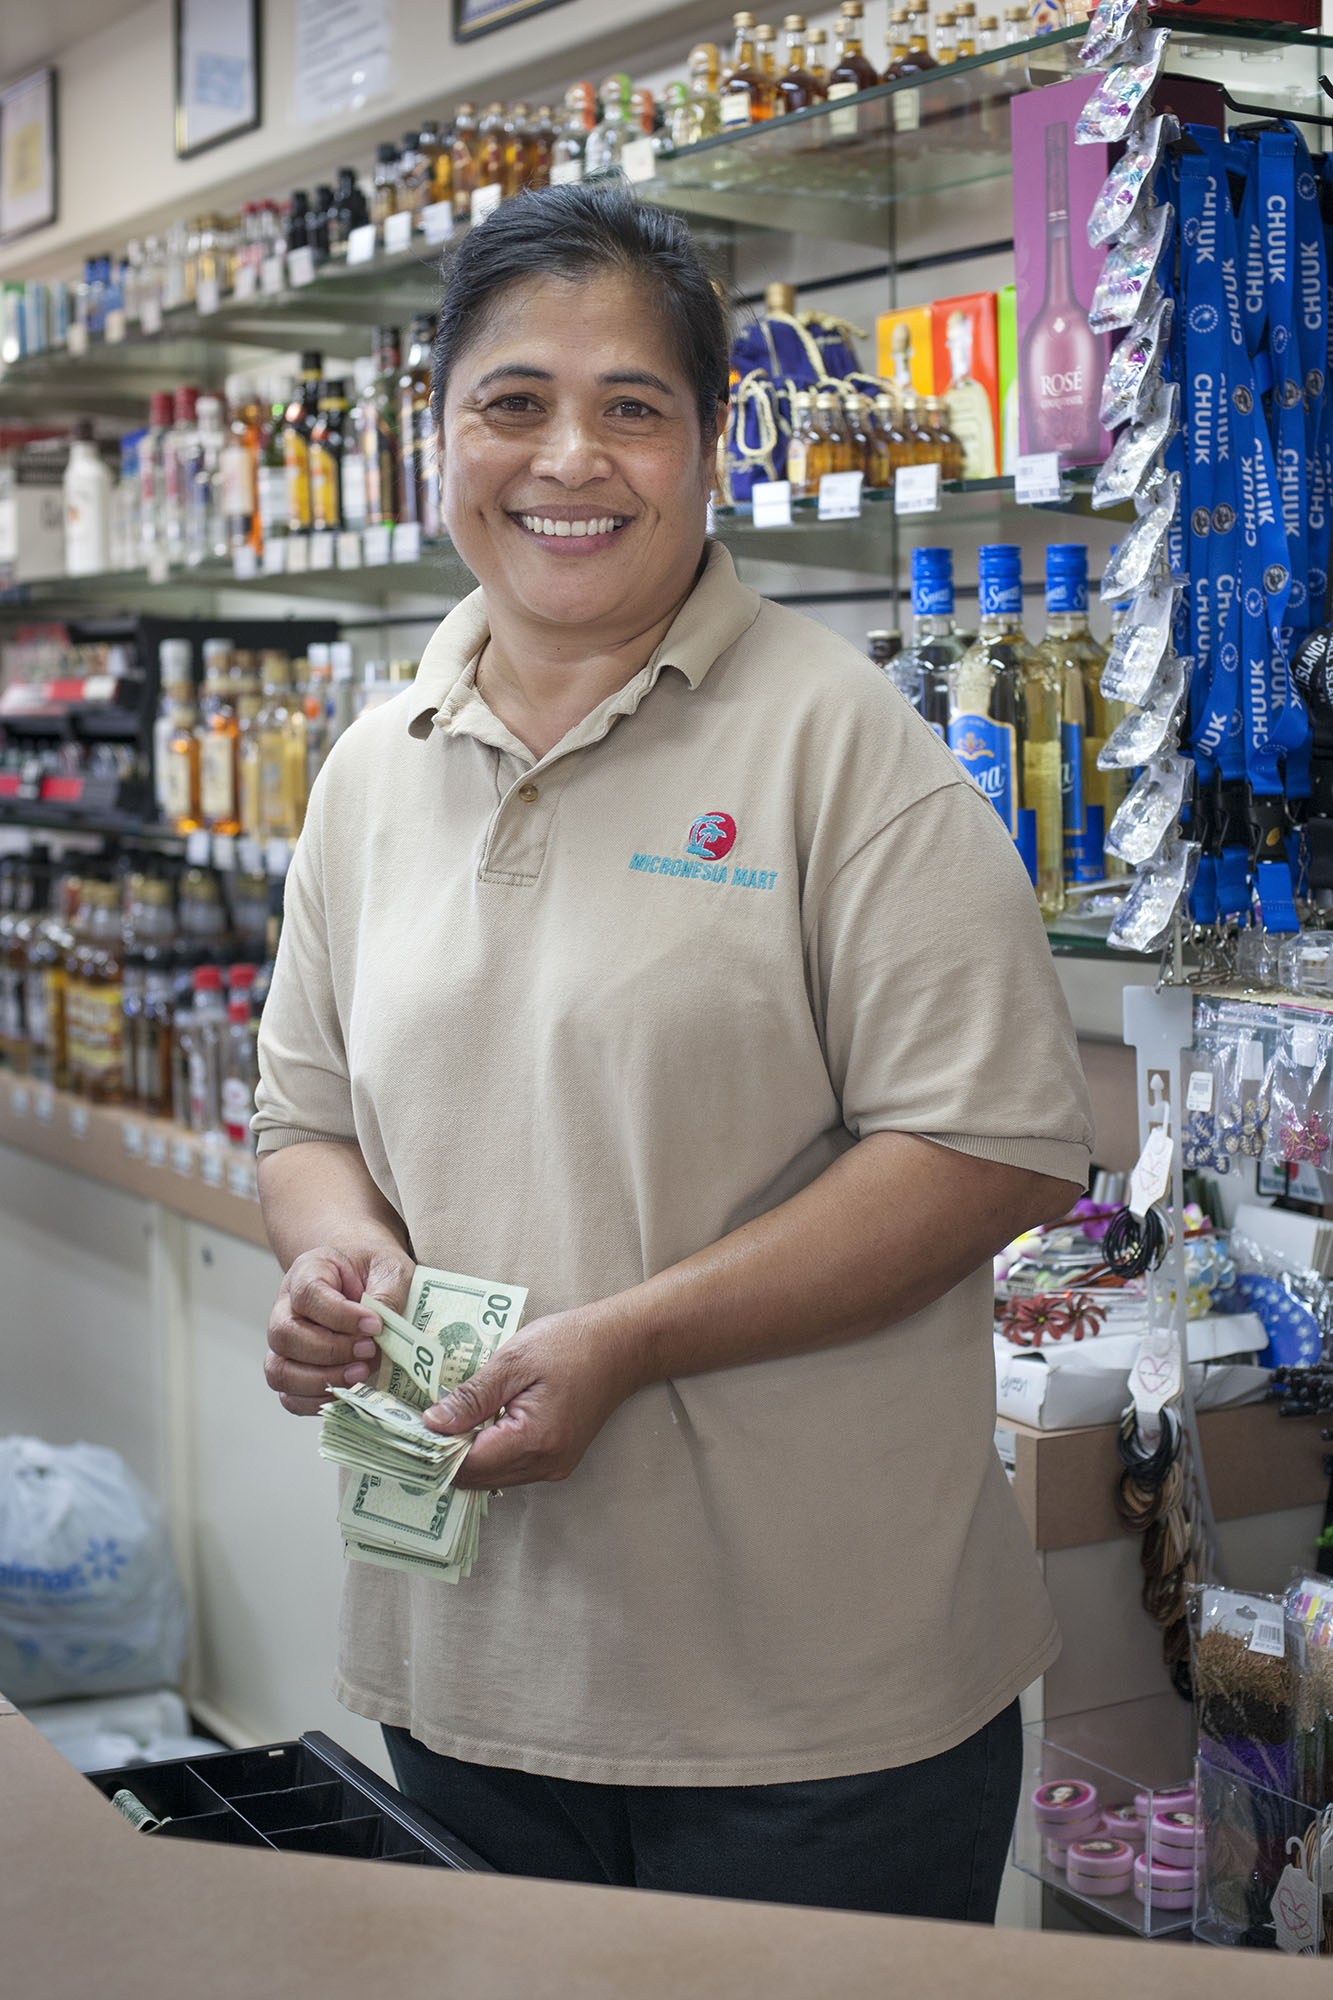 <p>An employee at the Micronesian Mart, which caters to a growing clientele that has moved to Hawaii from Yap, Palau, Chuuk, Pohnpei, Kosrae and the Marshalls.</p>